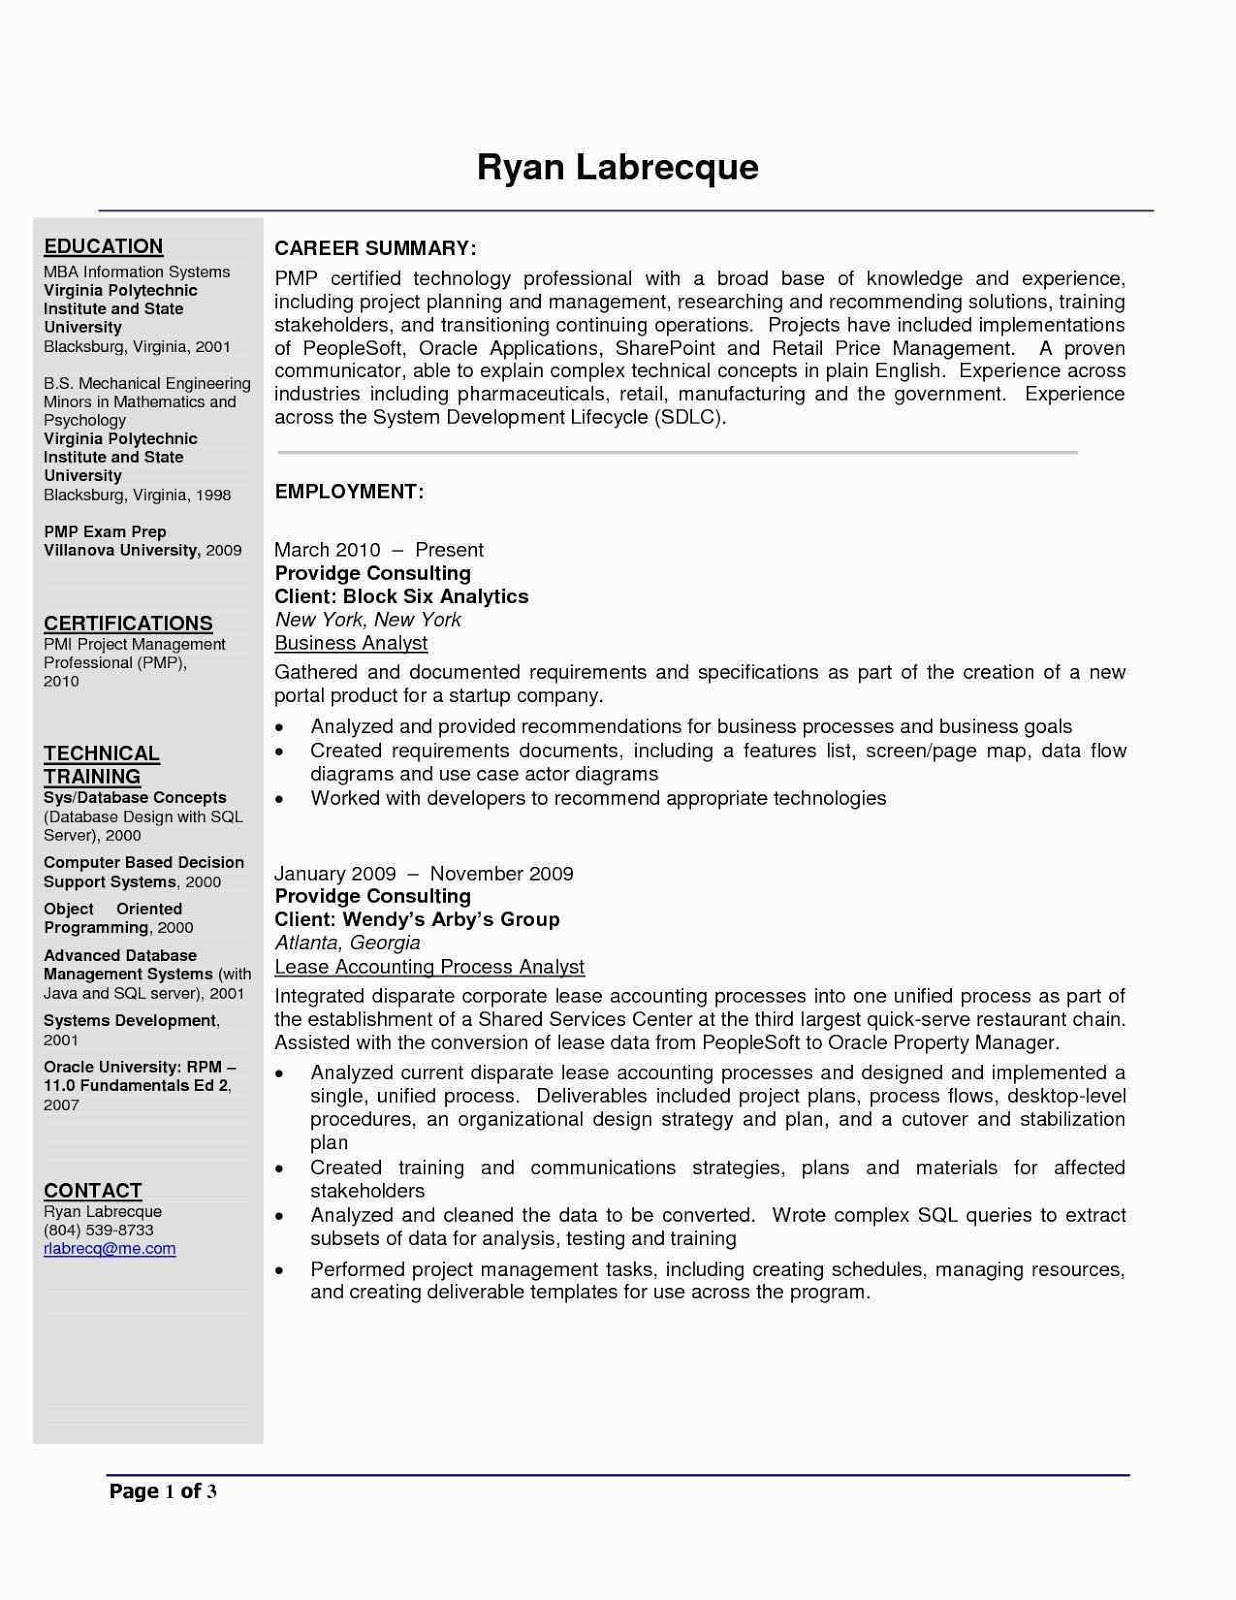 academic cv uk samples 2019 - 2020